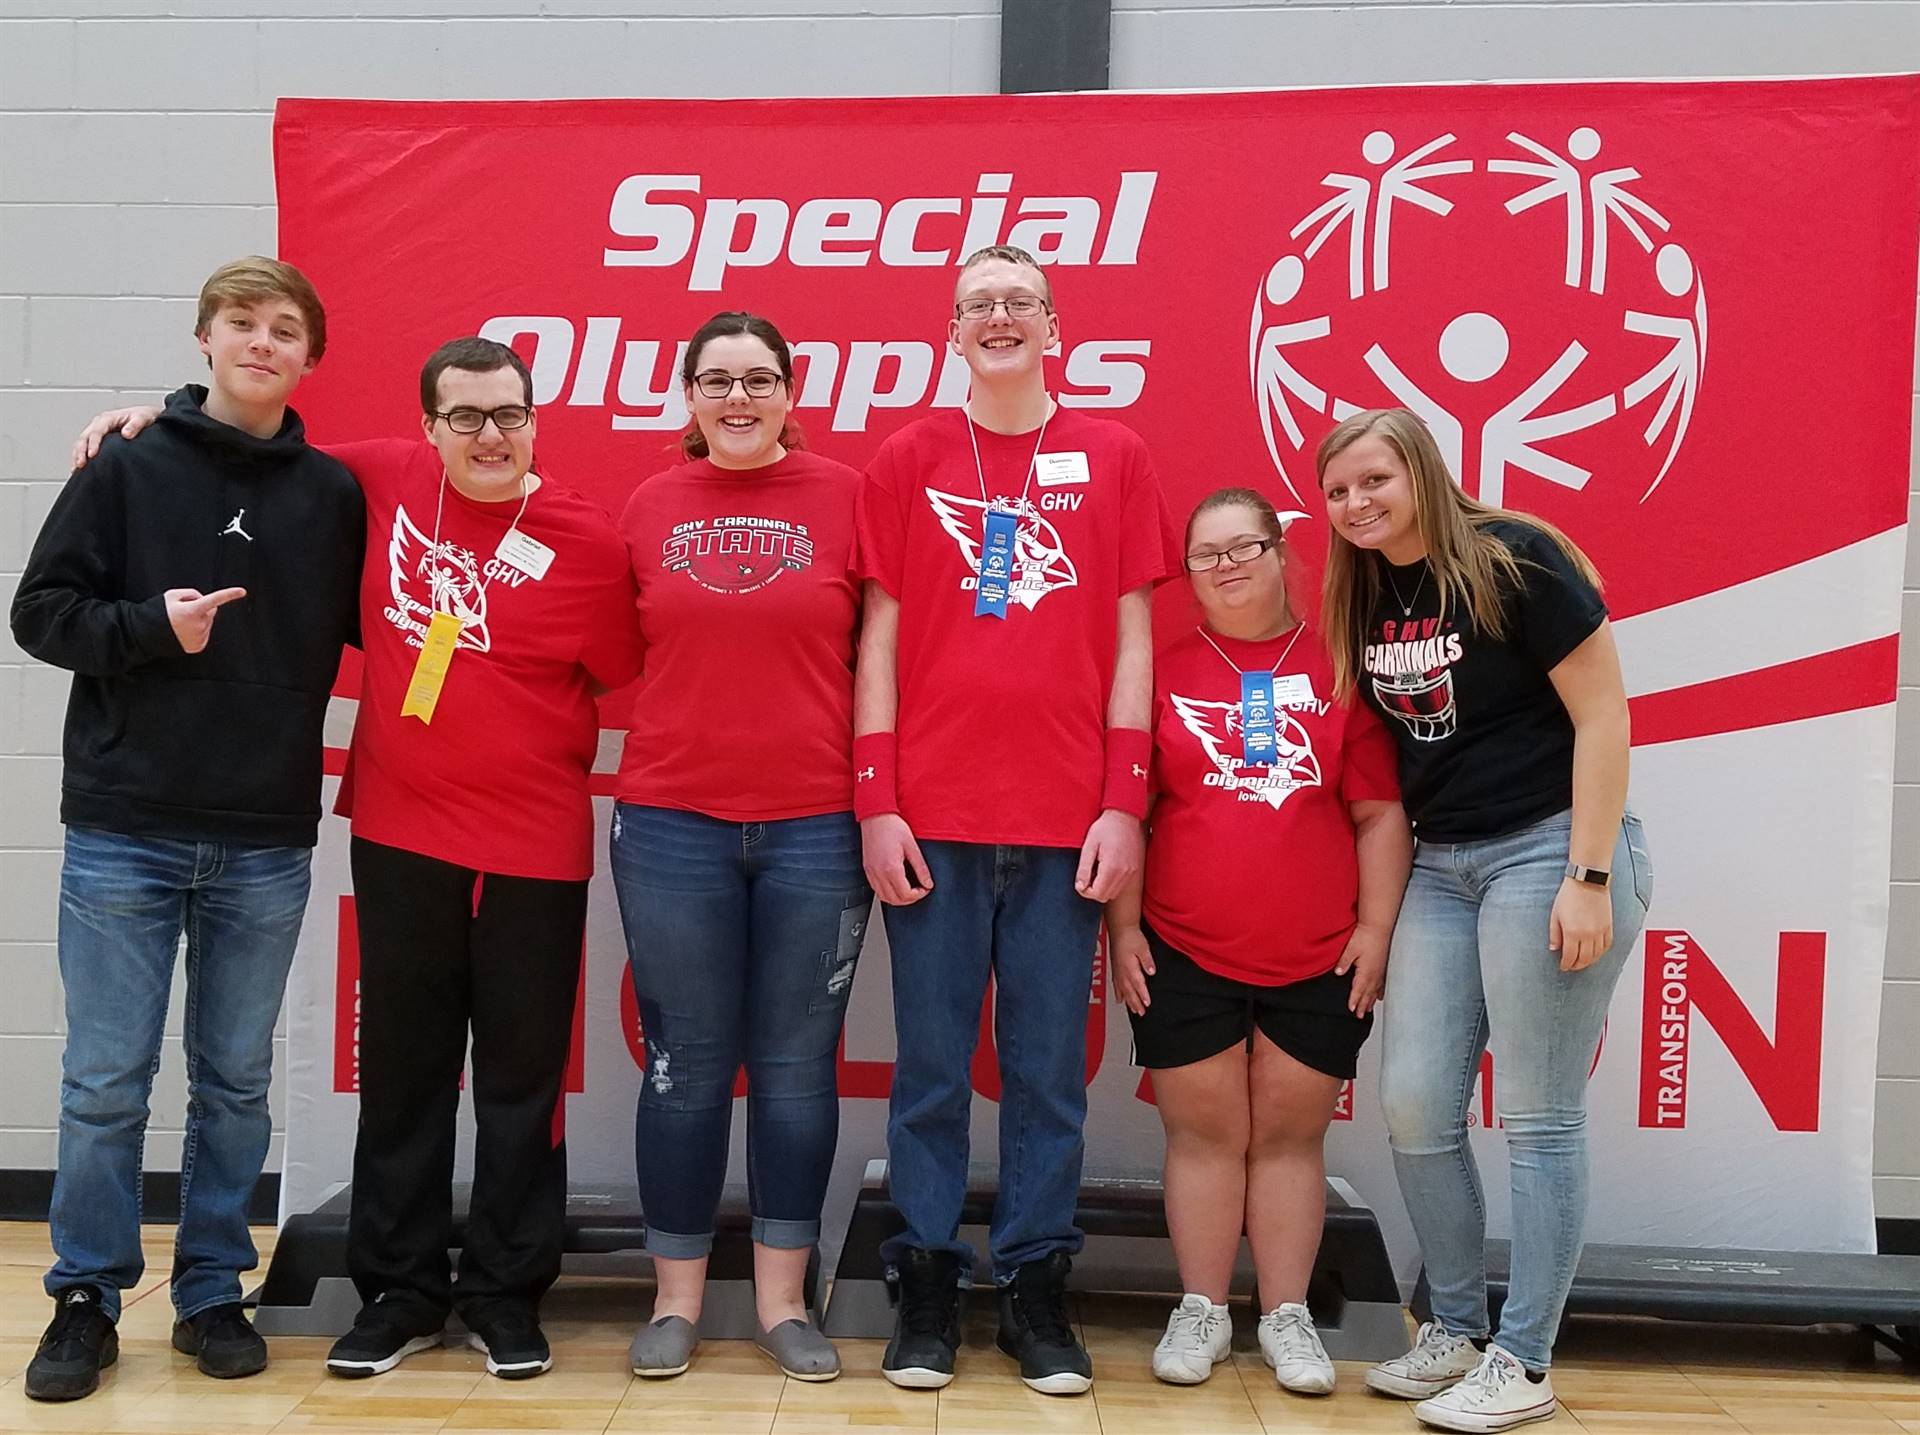 Six students posing by special olympics sign